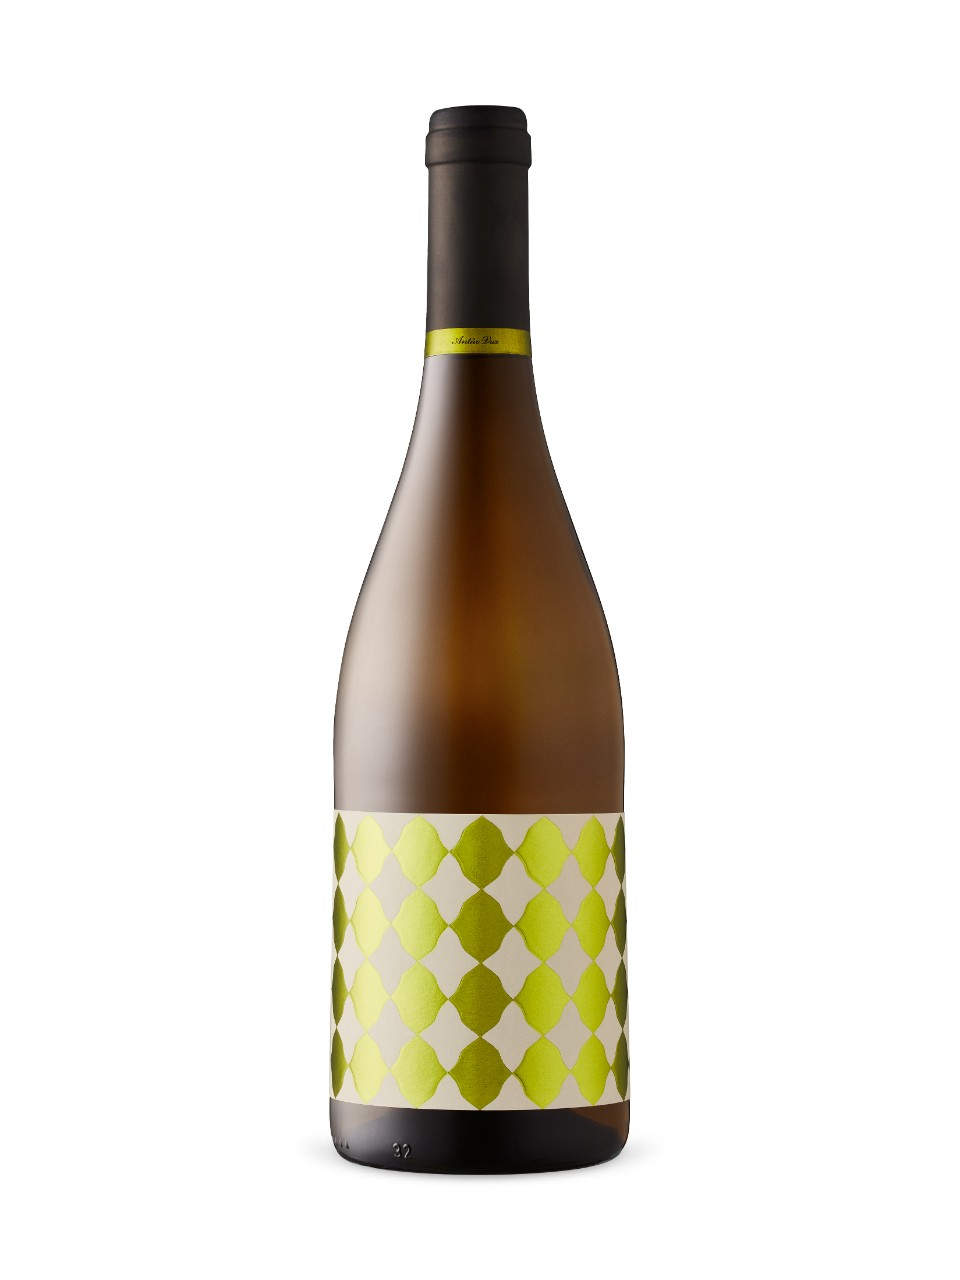 Image for Arrepiado Antão Vaz White 2016 from LCBO